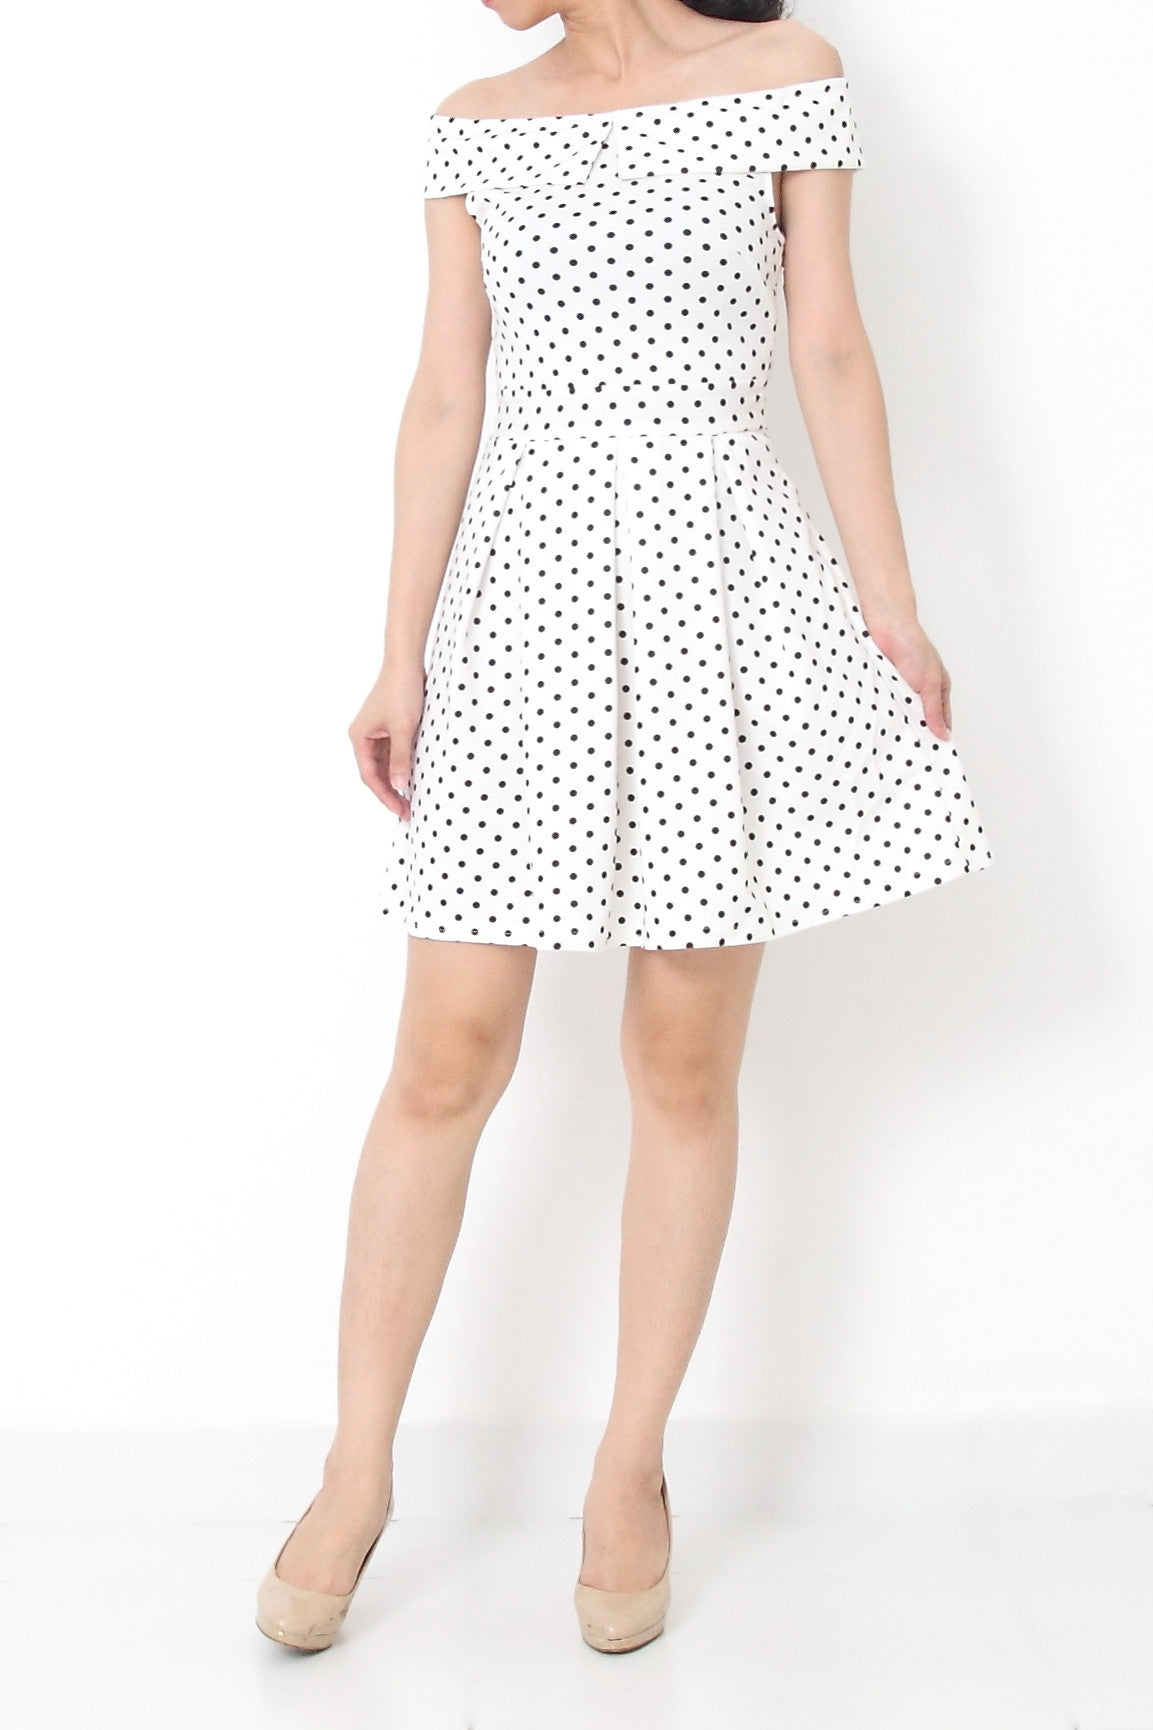 8dec4a931966 MIREILLE Polka Dots Off Shoulder Dress White – Felice Fabric